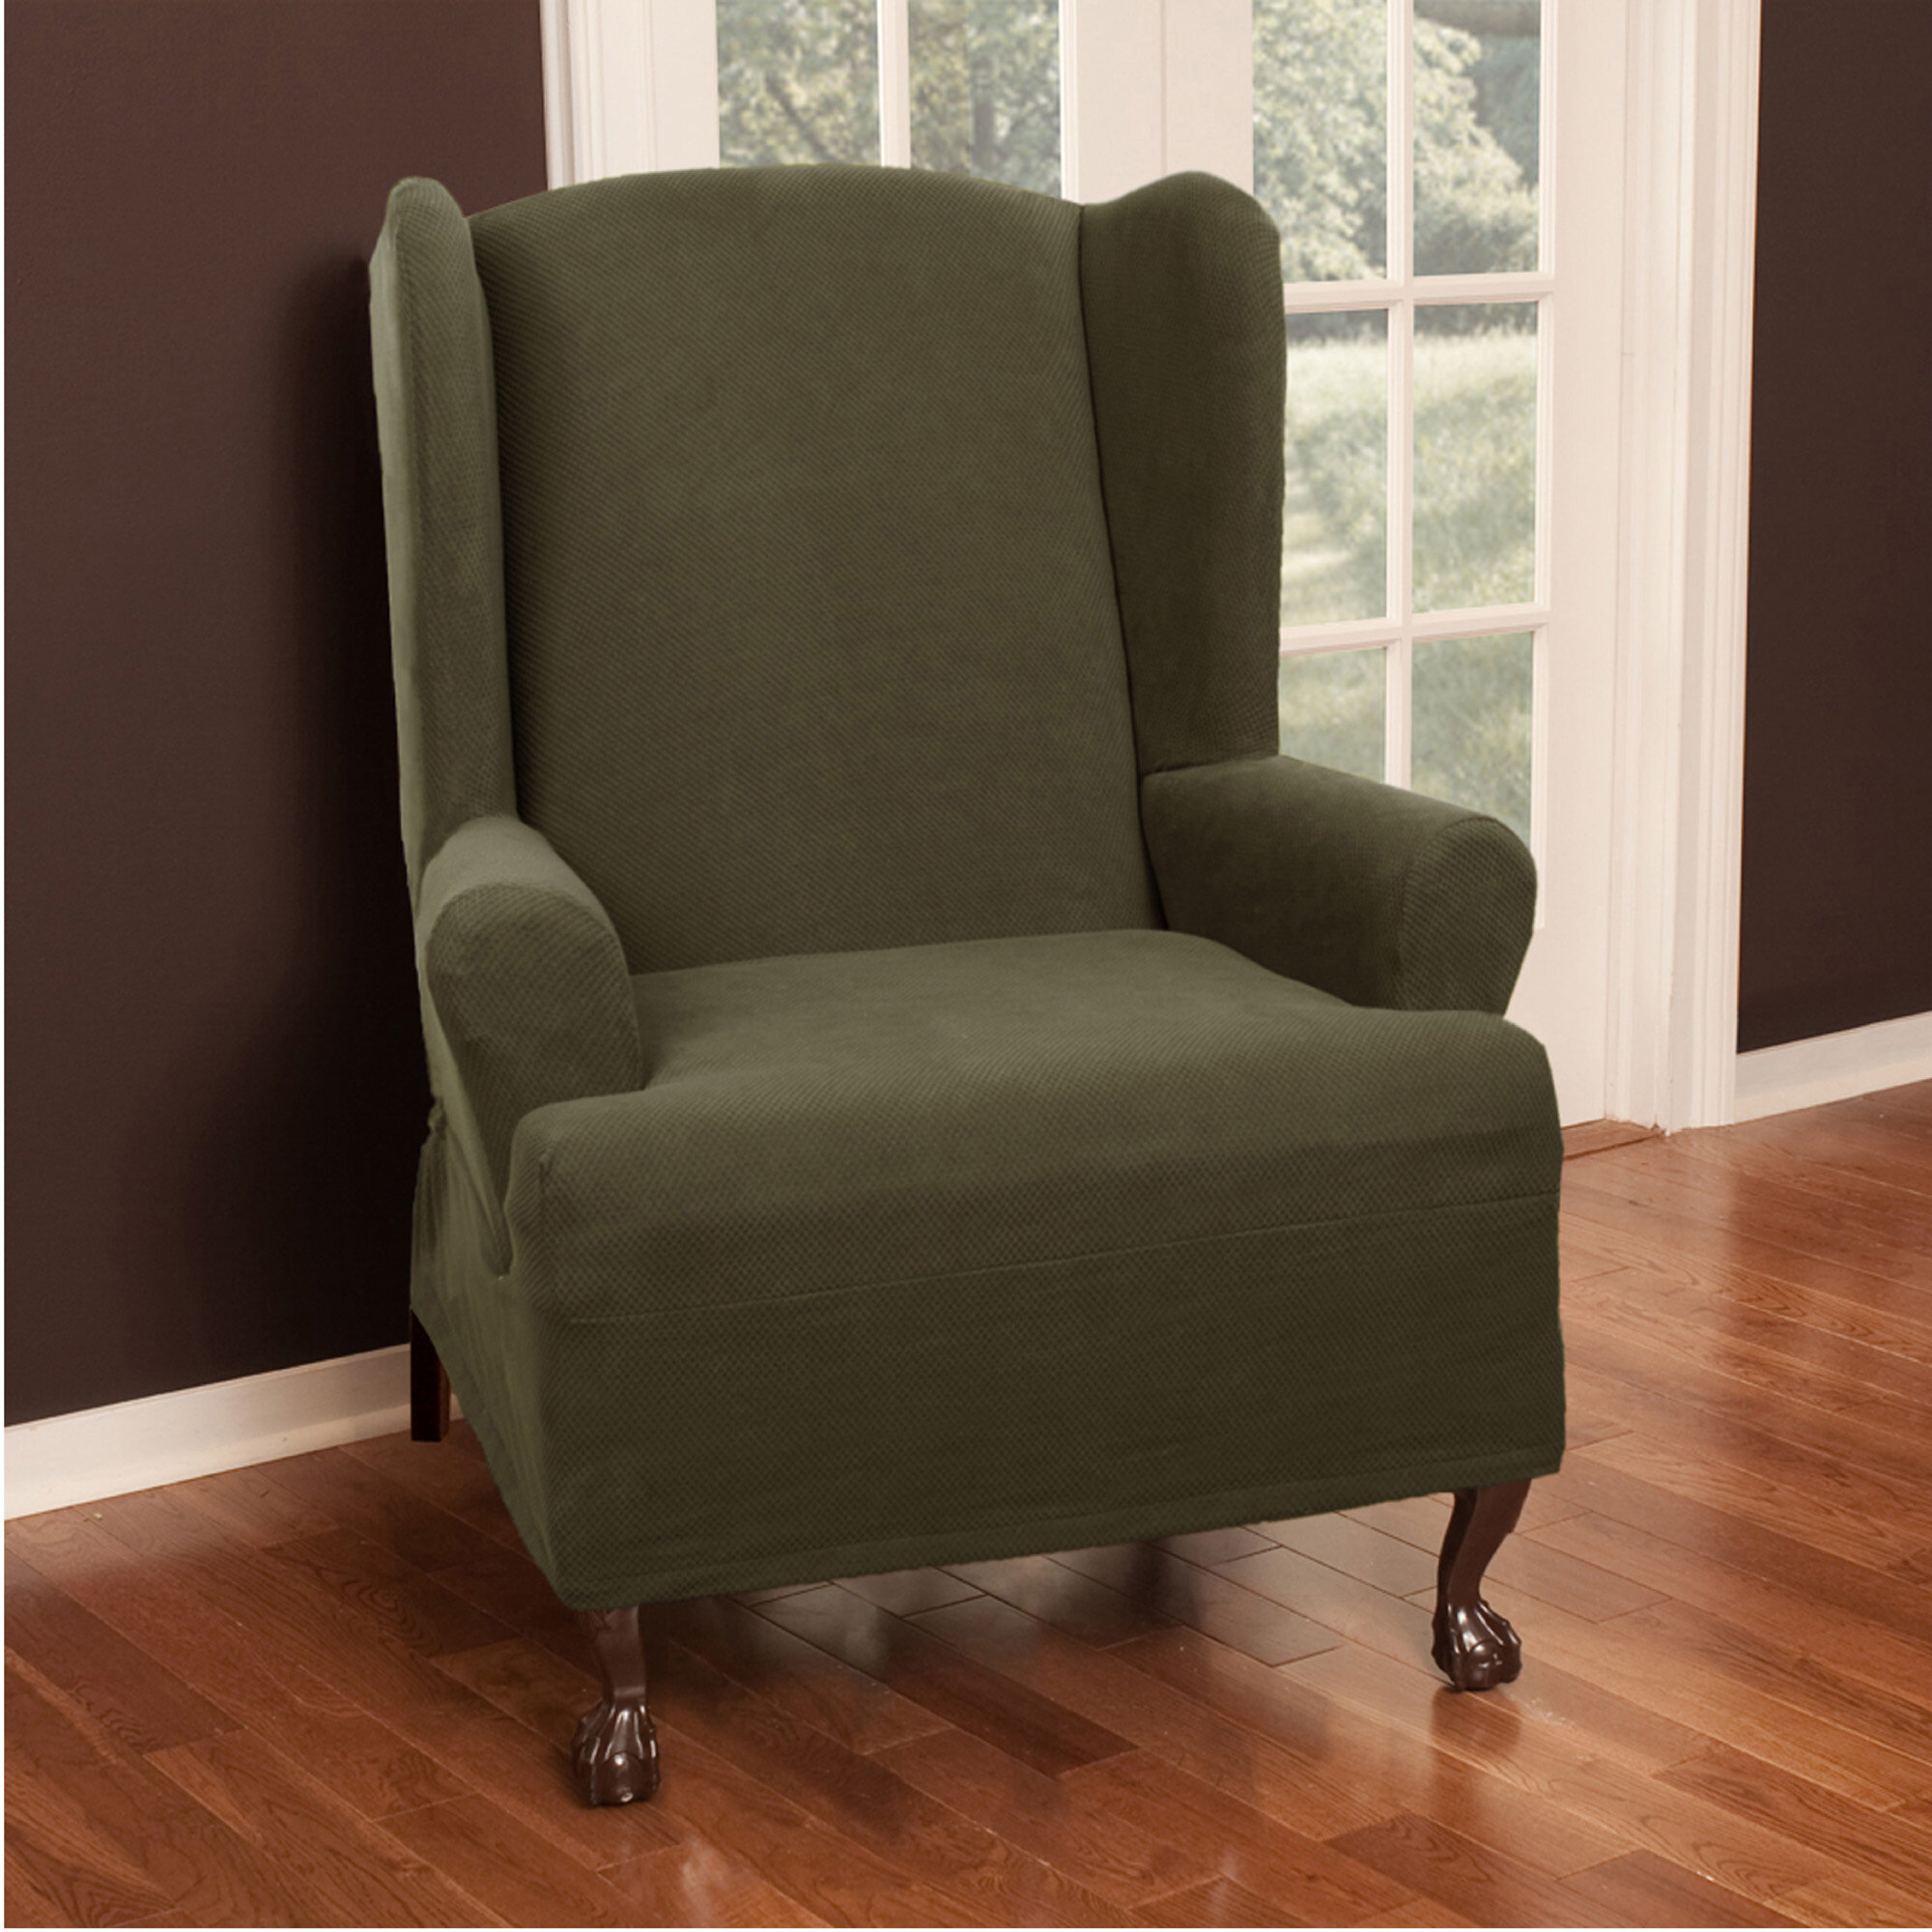 Maytex Pixel Stretch Wing Chair T Cushion Slipcover Ebay